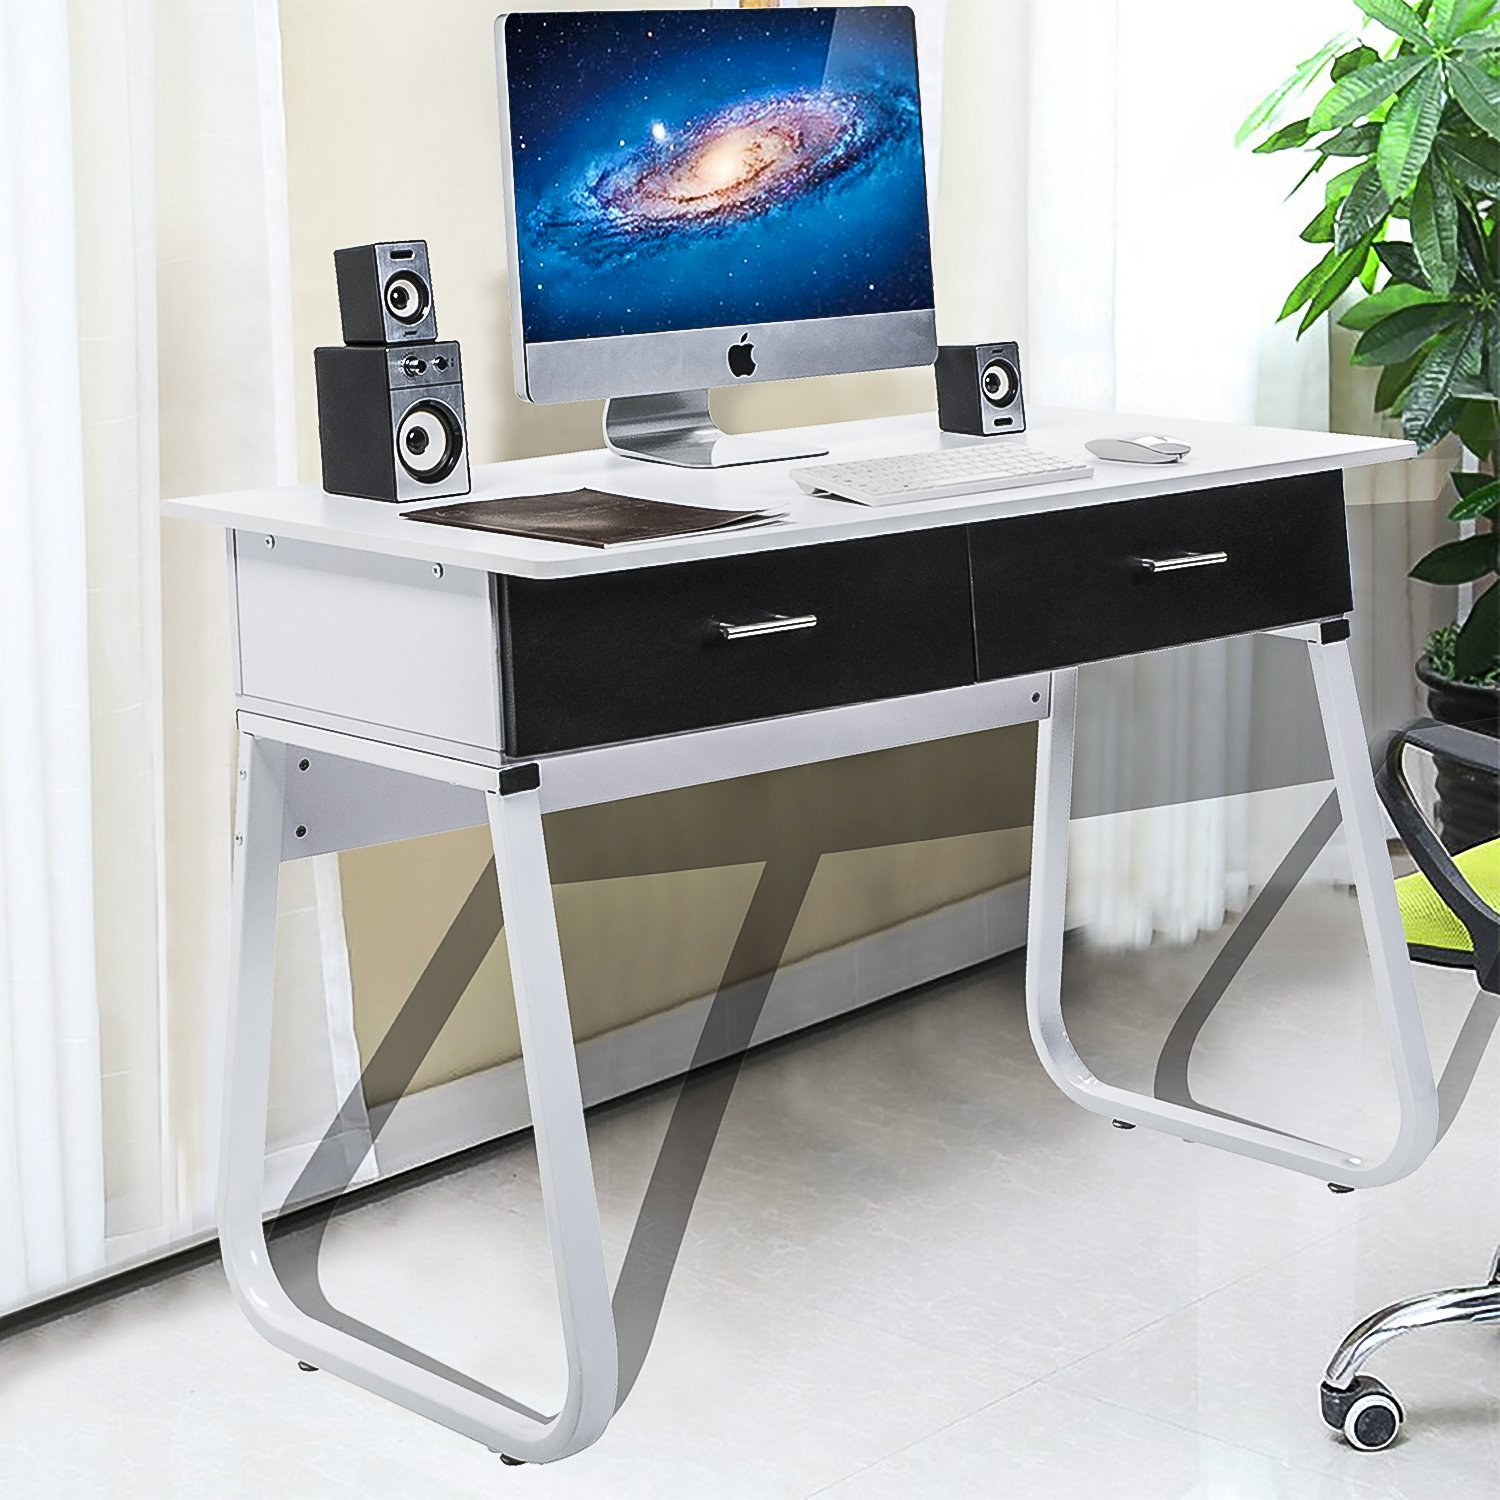 Merax Solid CARB Board Home and Office Computer Writing Desk Table ,Office Desk with Drawers ,White